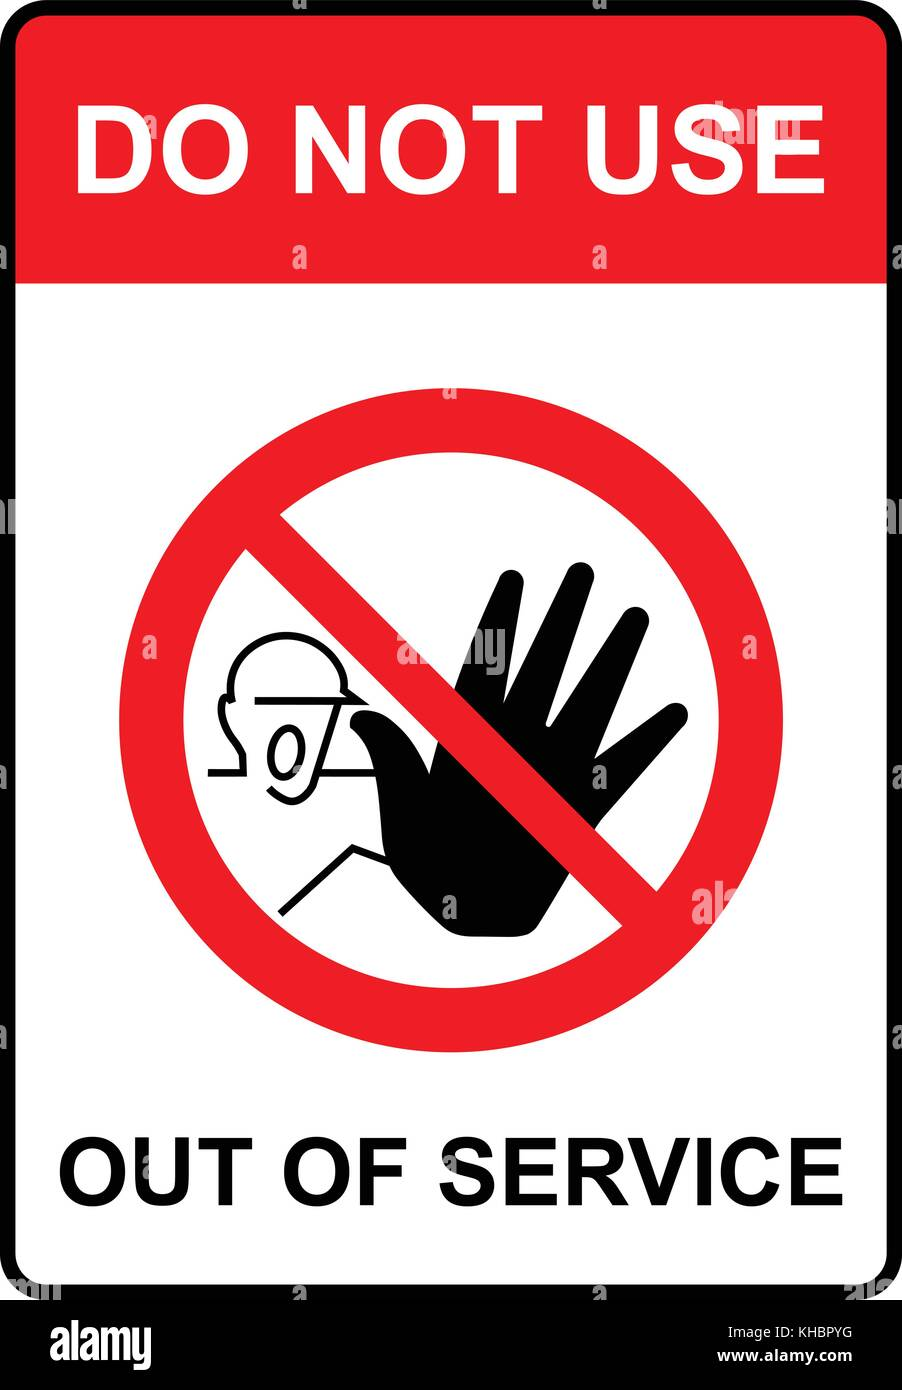 Do not use, out of service, warning sign, vector illustration. - Stock Vector